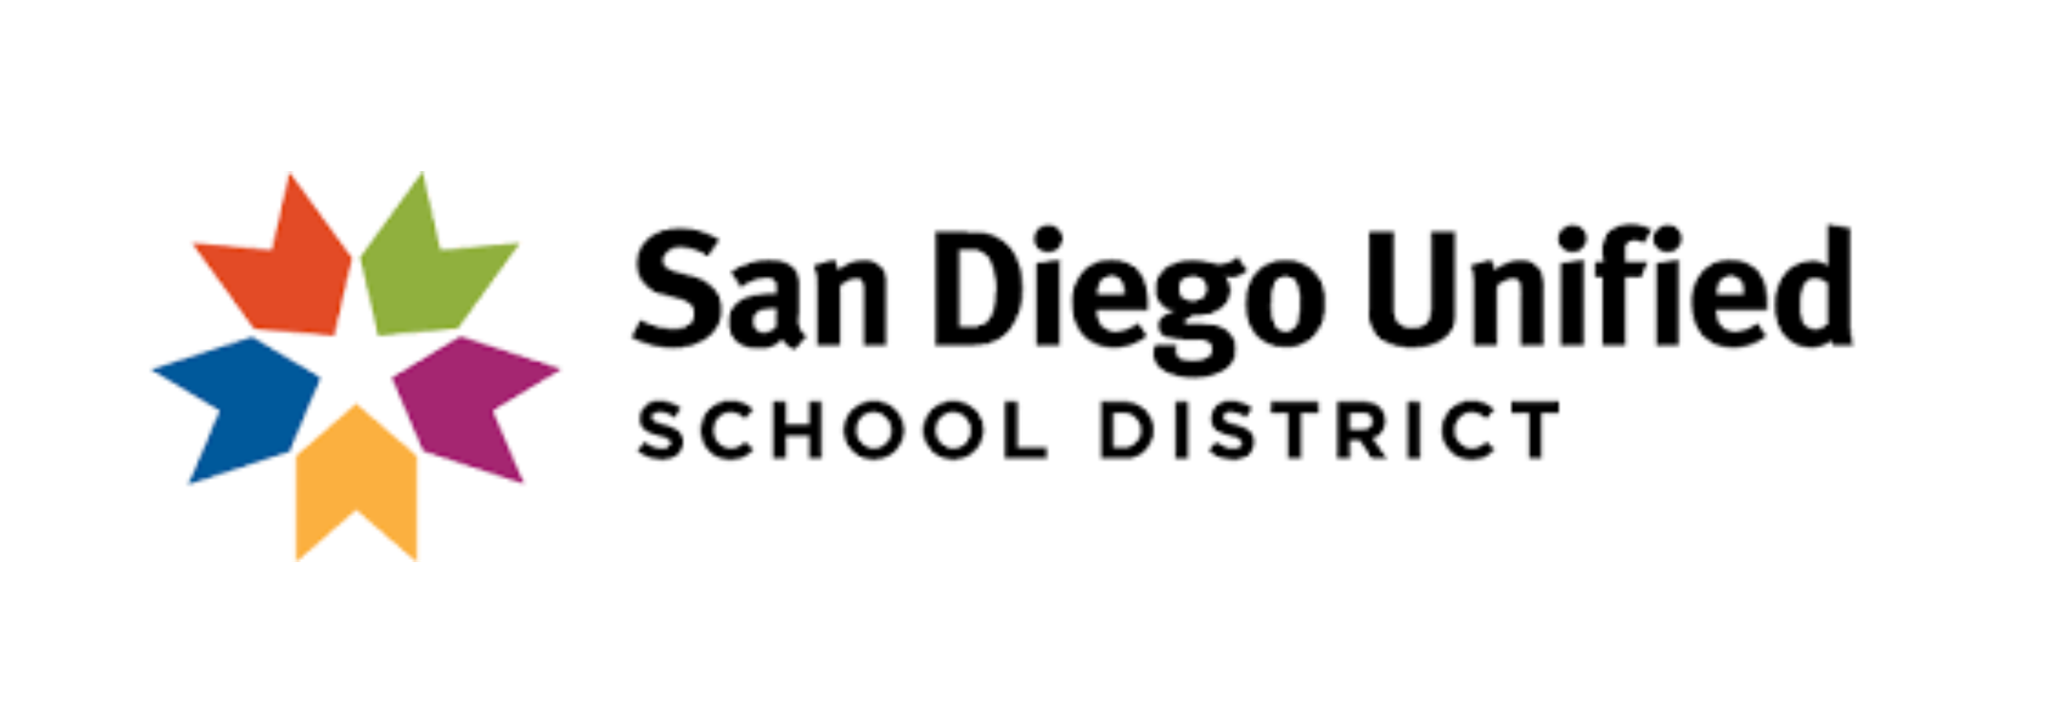 San Diego Unified School District Logo